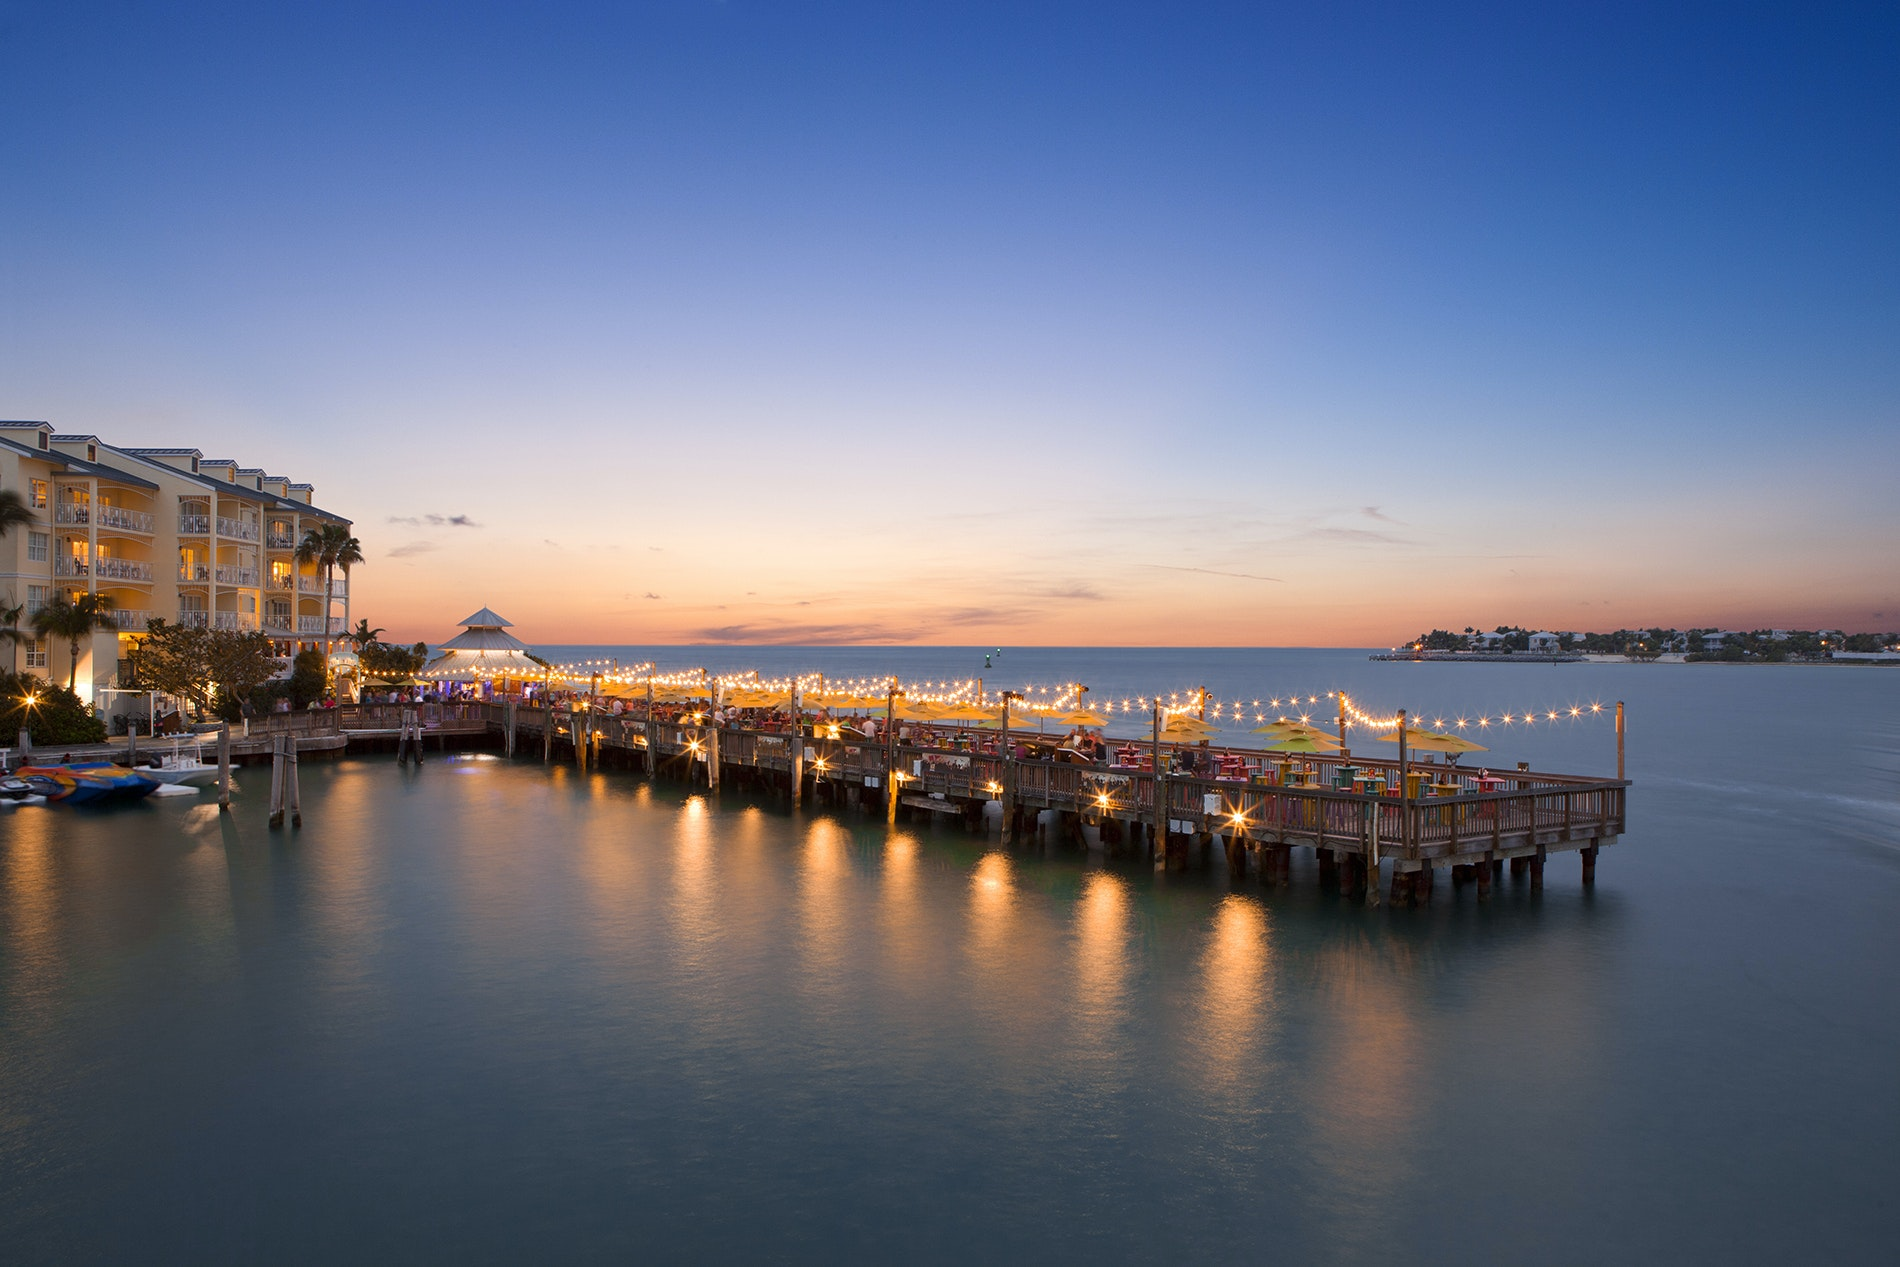 Ocean Key Resort is the place to be for Key West's sunset celebrations.